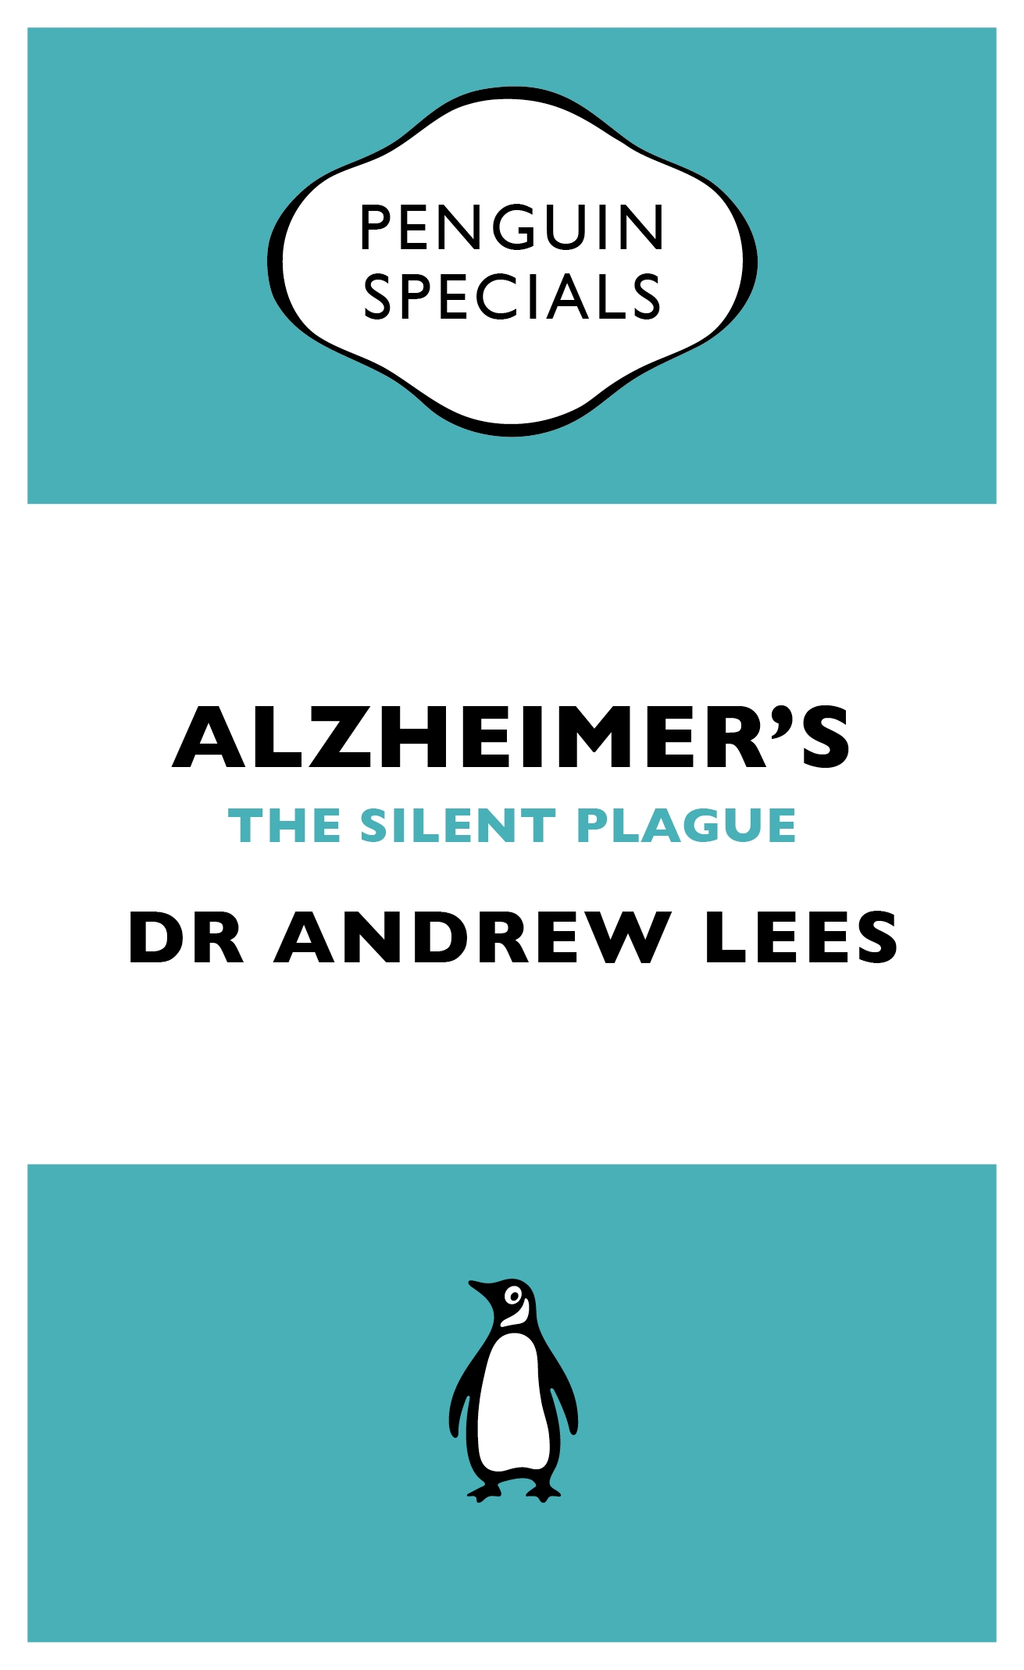 Alzheimer's (Penguin Specials) An essential guide to the disease and other forms of dementia